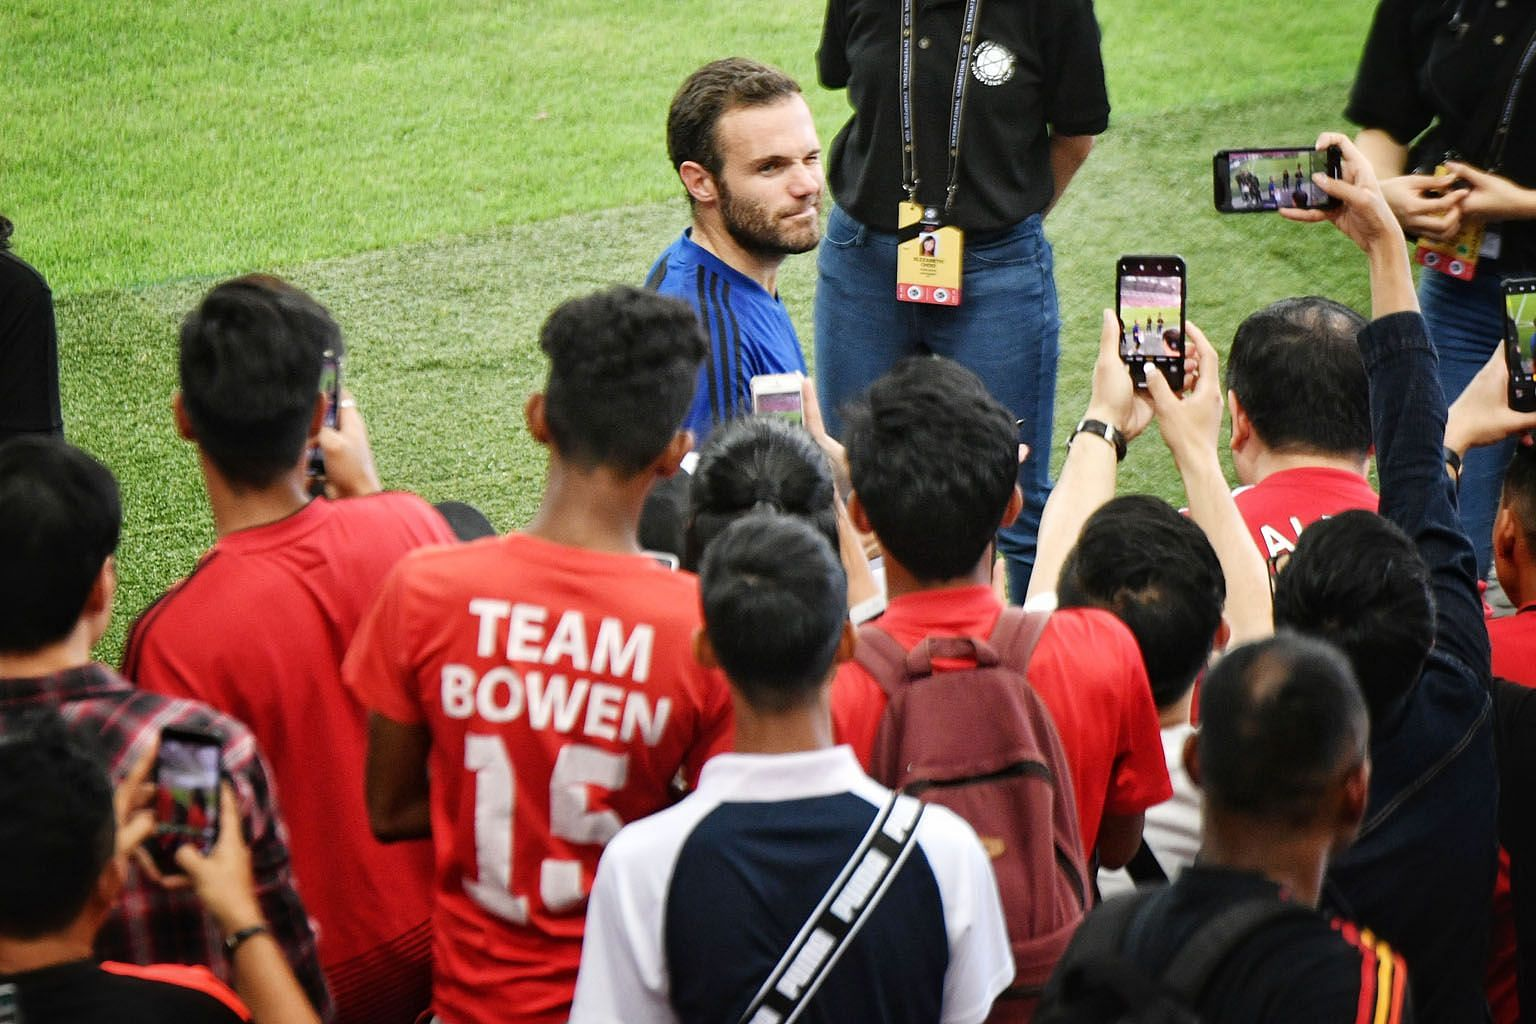 Veteran midfielder Juan Mata taking time to engage the fans after Manchester United's training session at National Stadium yesterday, ahead of their ICC match against Inter Milan tonight.